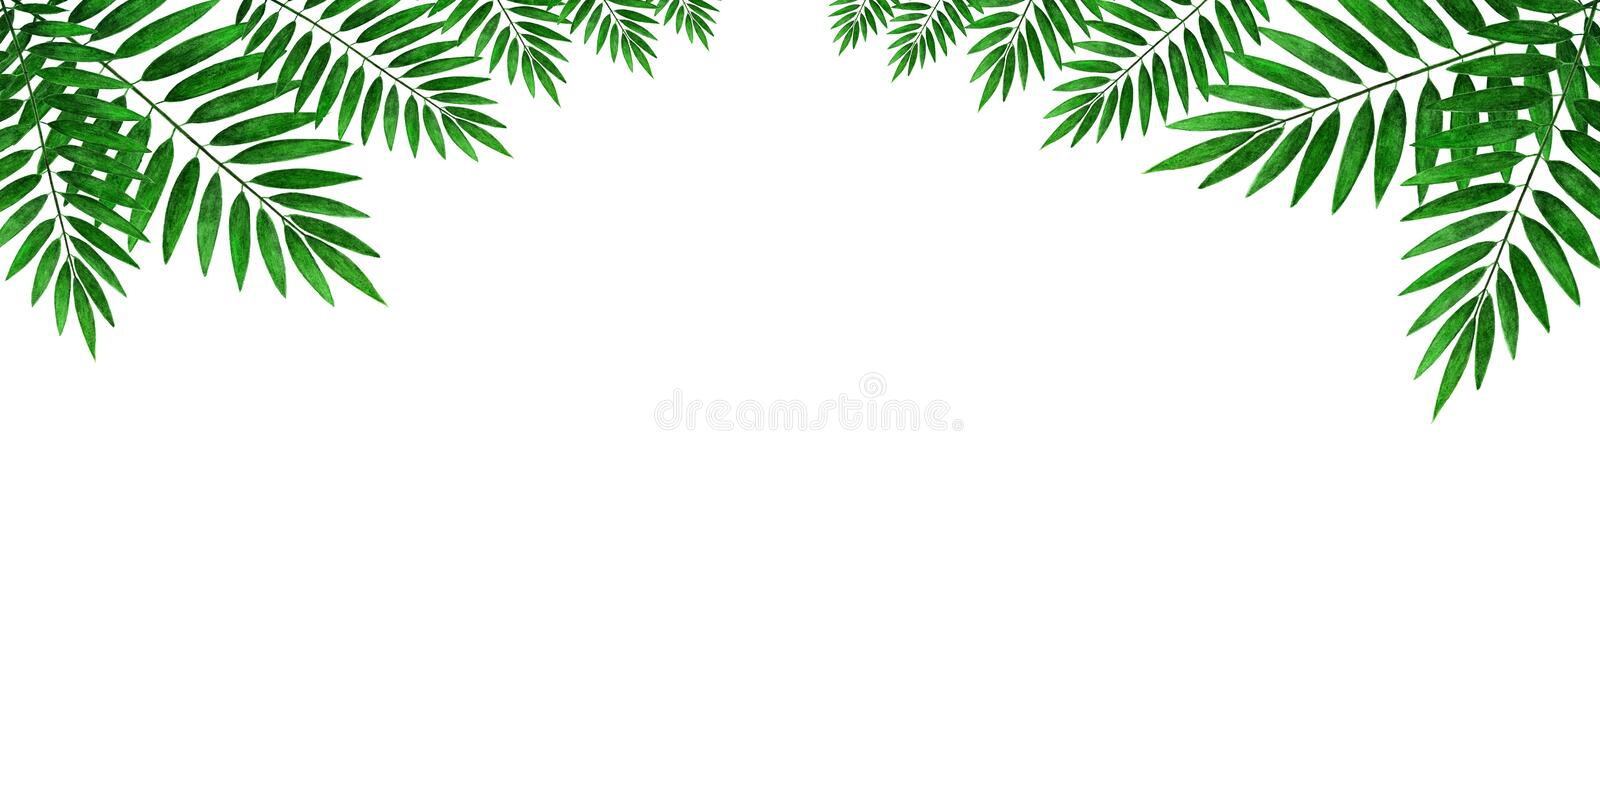 Leaves of palm trees on a white background. Sheet for decoration and writing text. stock image